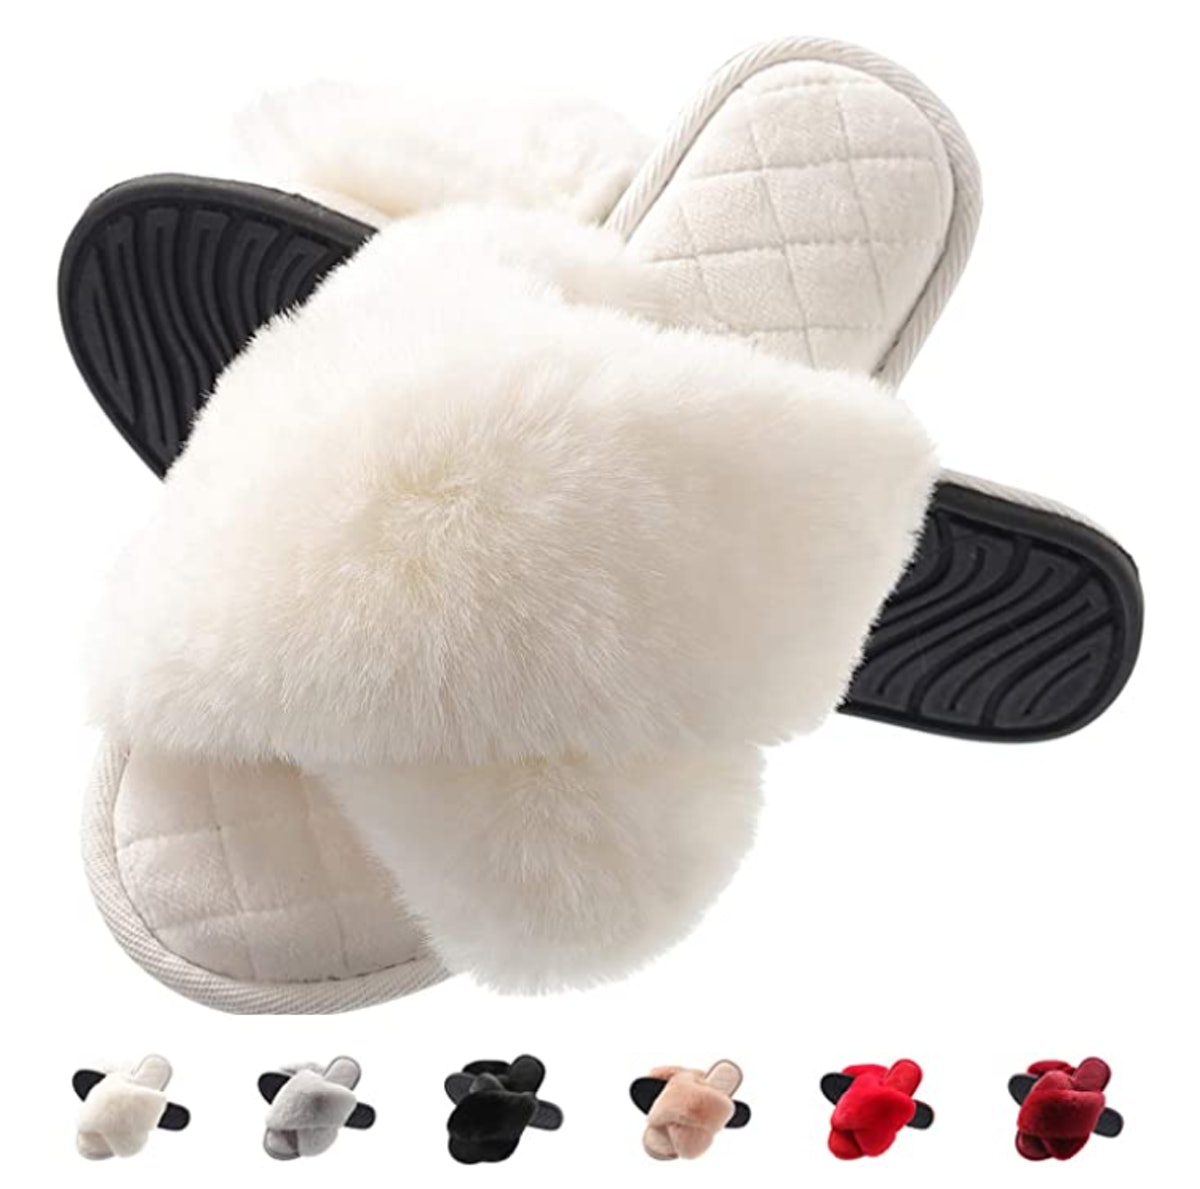 COCOHOME Women's Cross Band Fuzzy Slippers